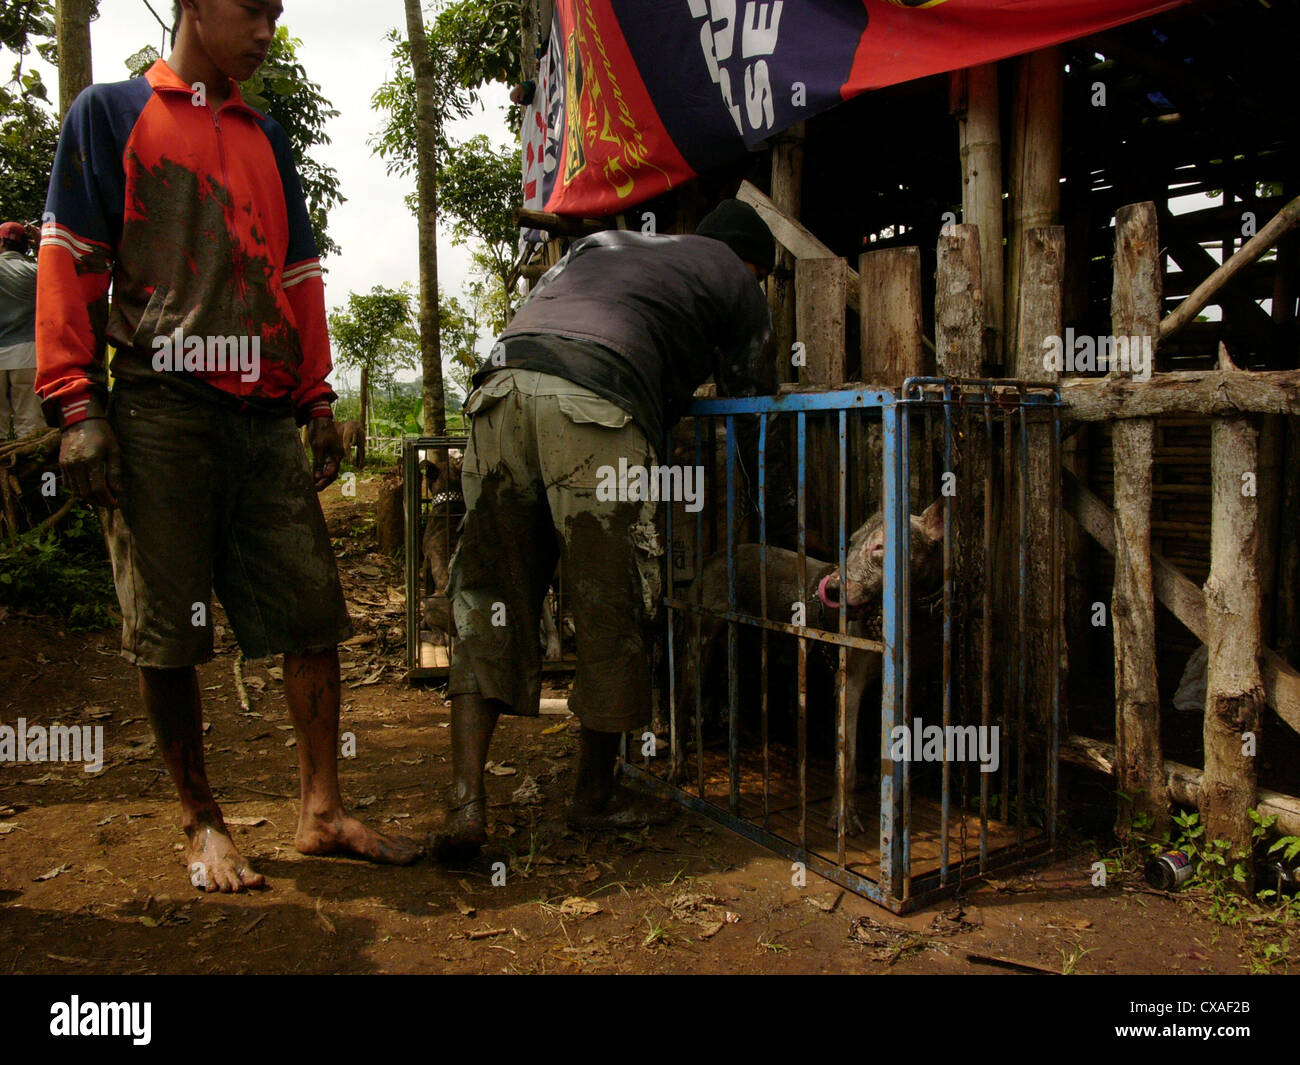 Members of a dog-fighting club corral their attack-dog during a legal pig-baiting contest in West Java, Indonesia. - Stock Image